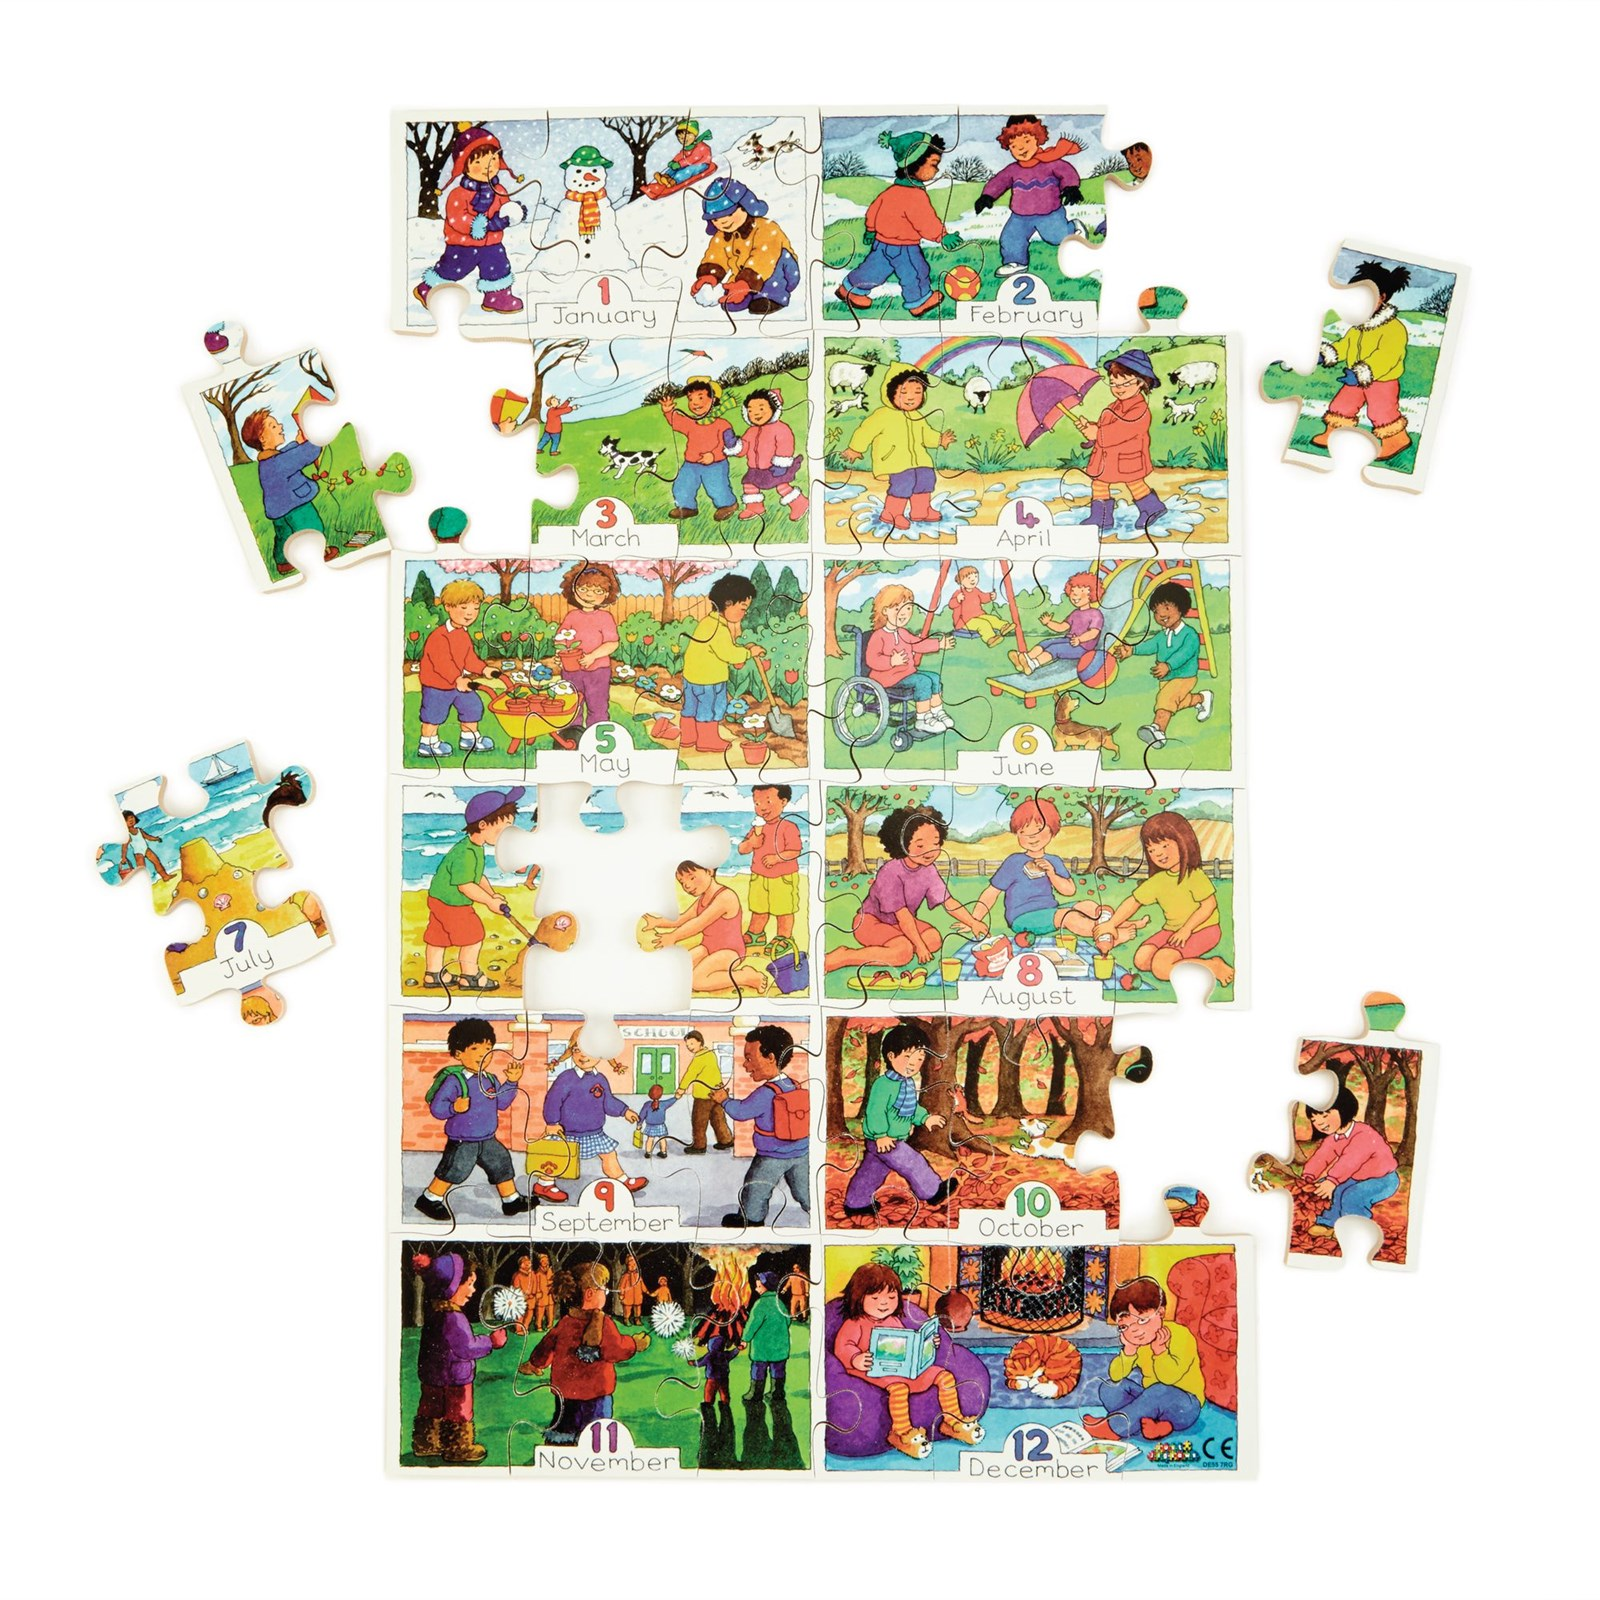 Months of the Year Jigsaw